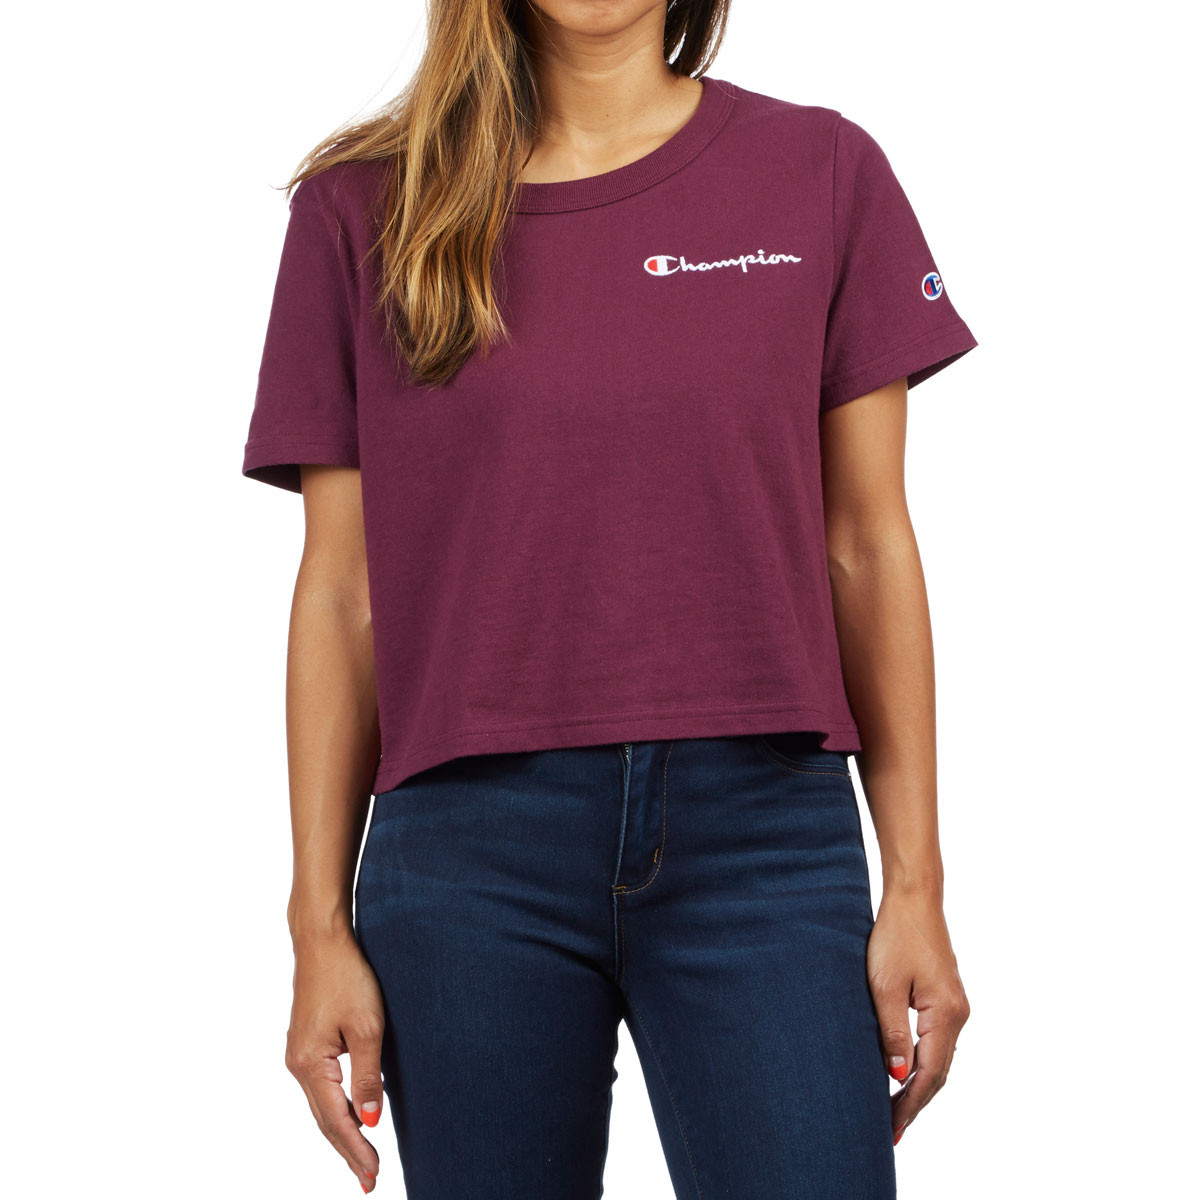 Champion Womens Cropped T-Shirt - Dark Berry Purple 94cd59d42